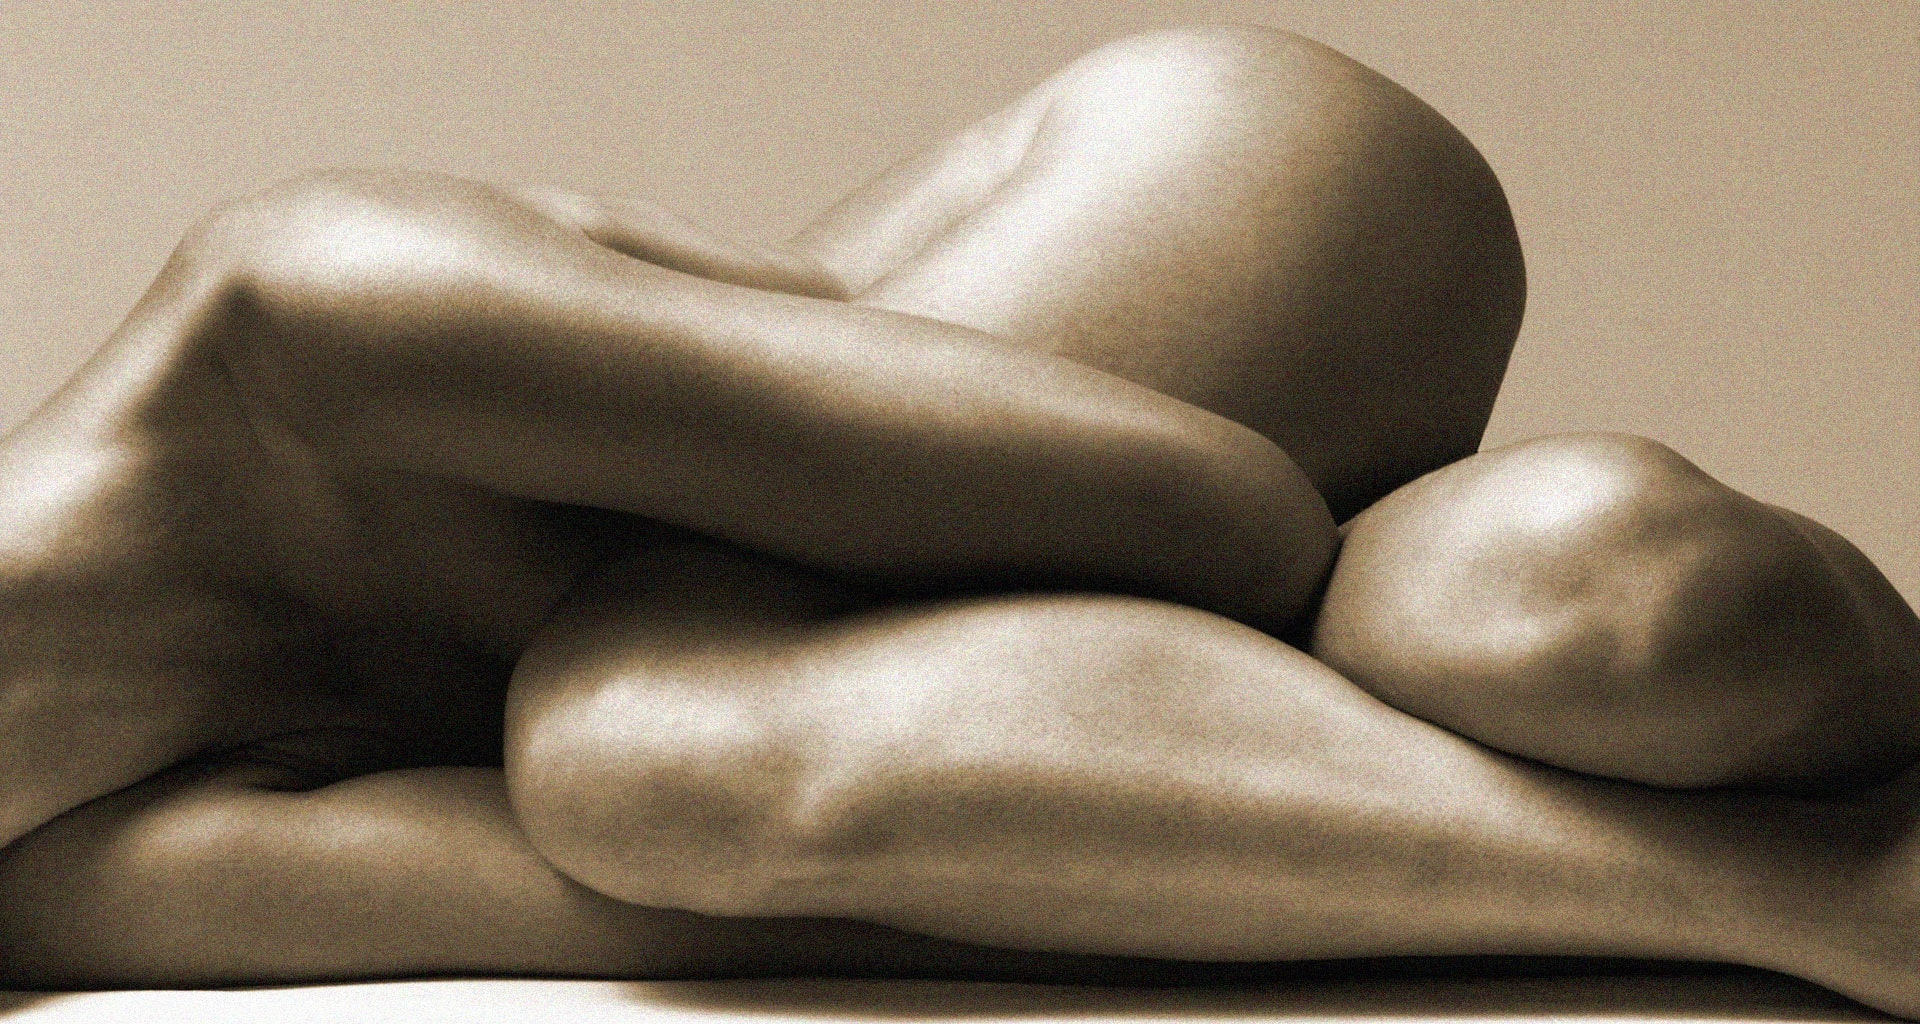 TANTRA PRIVATE SESSIONS